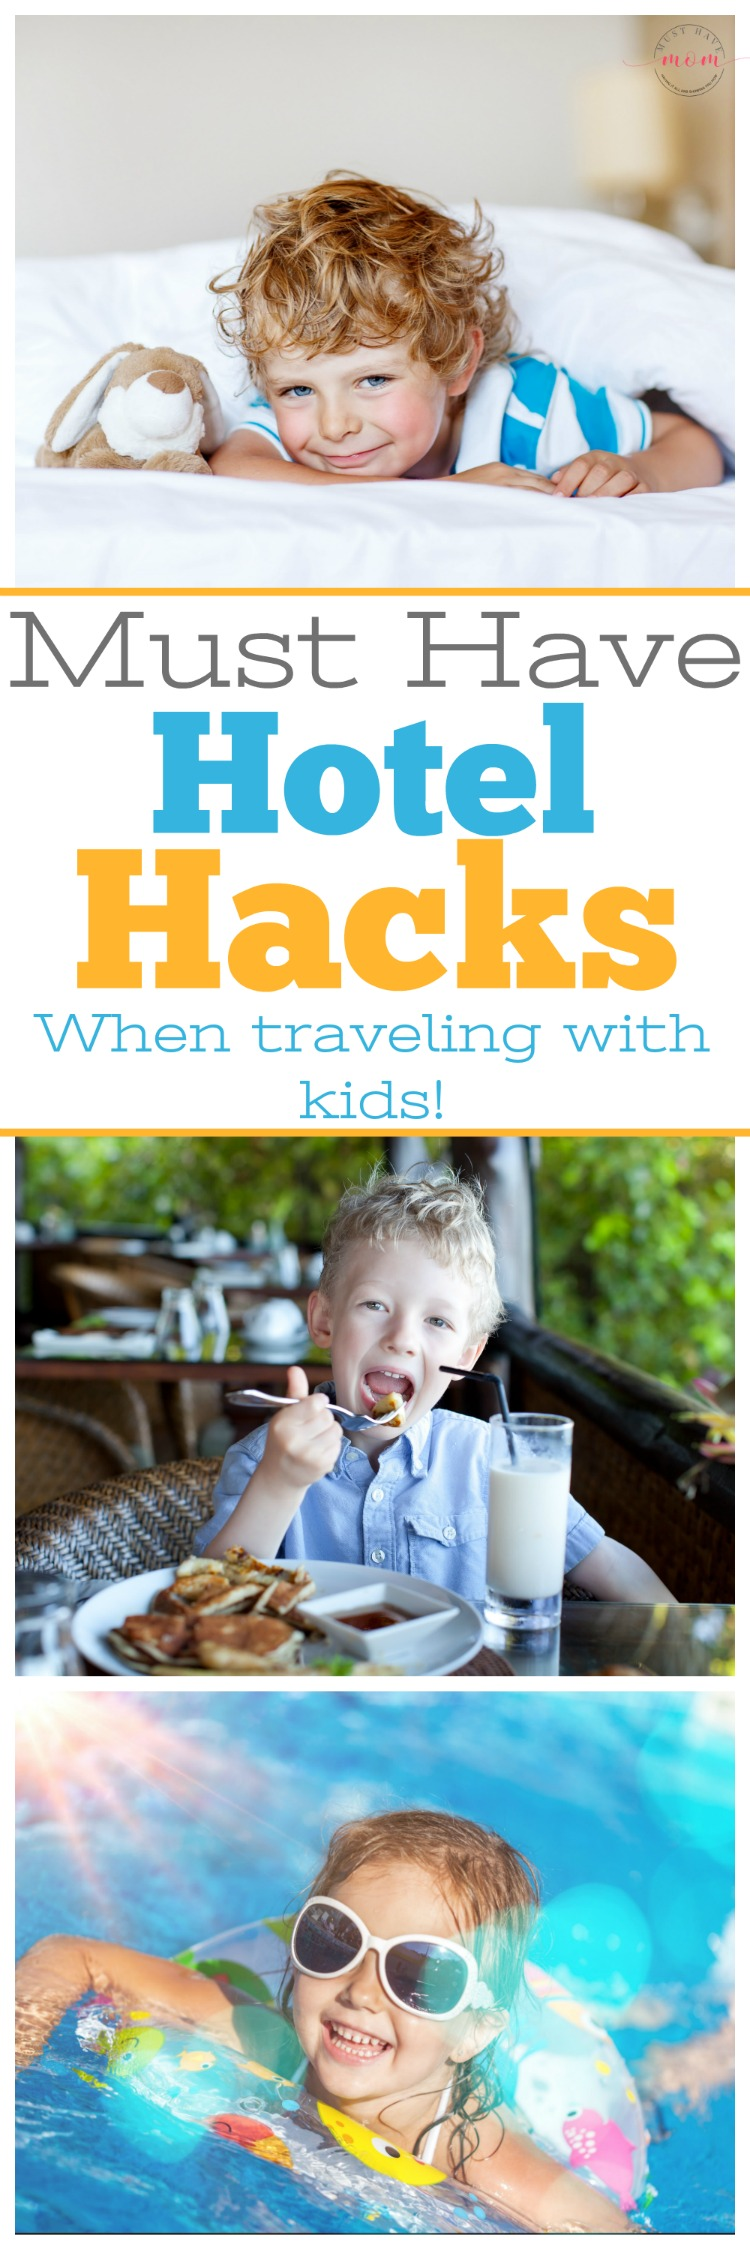 Must have hotel hacks when traveling with kids! Huge list of things to look for and hacks to make hotel travel easier!